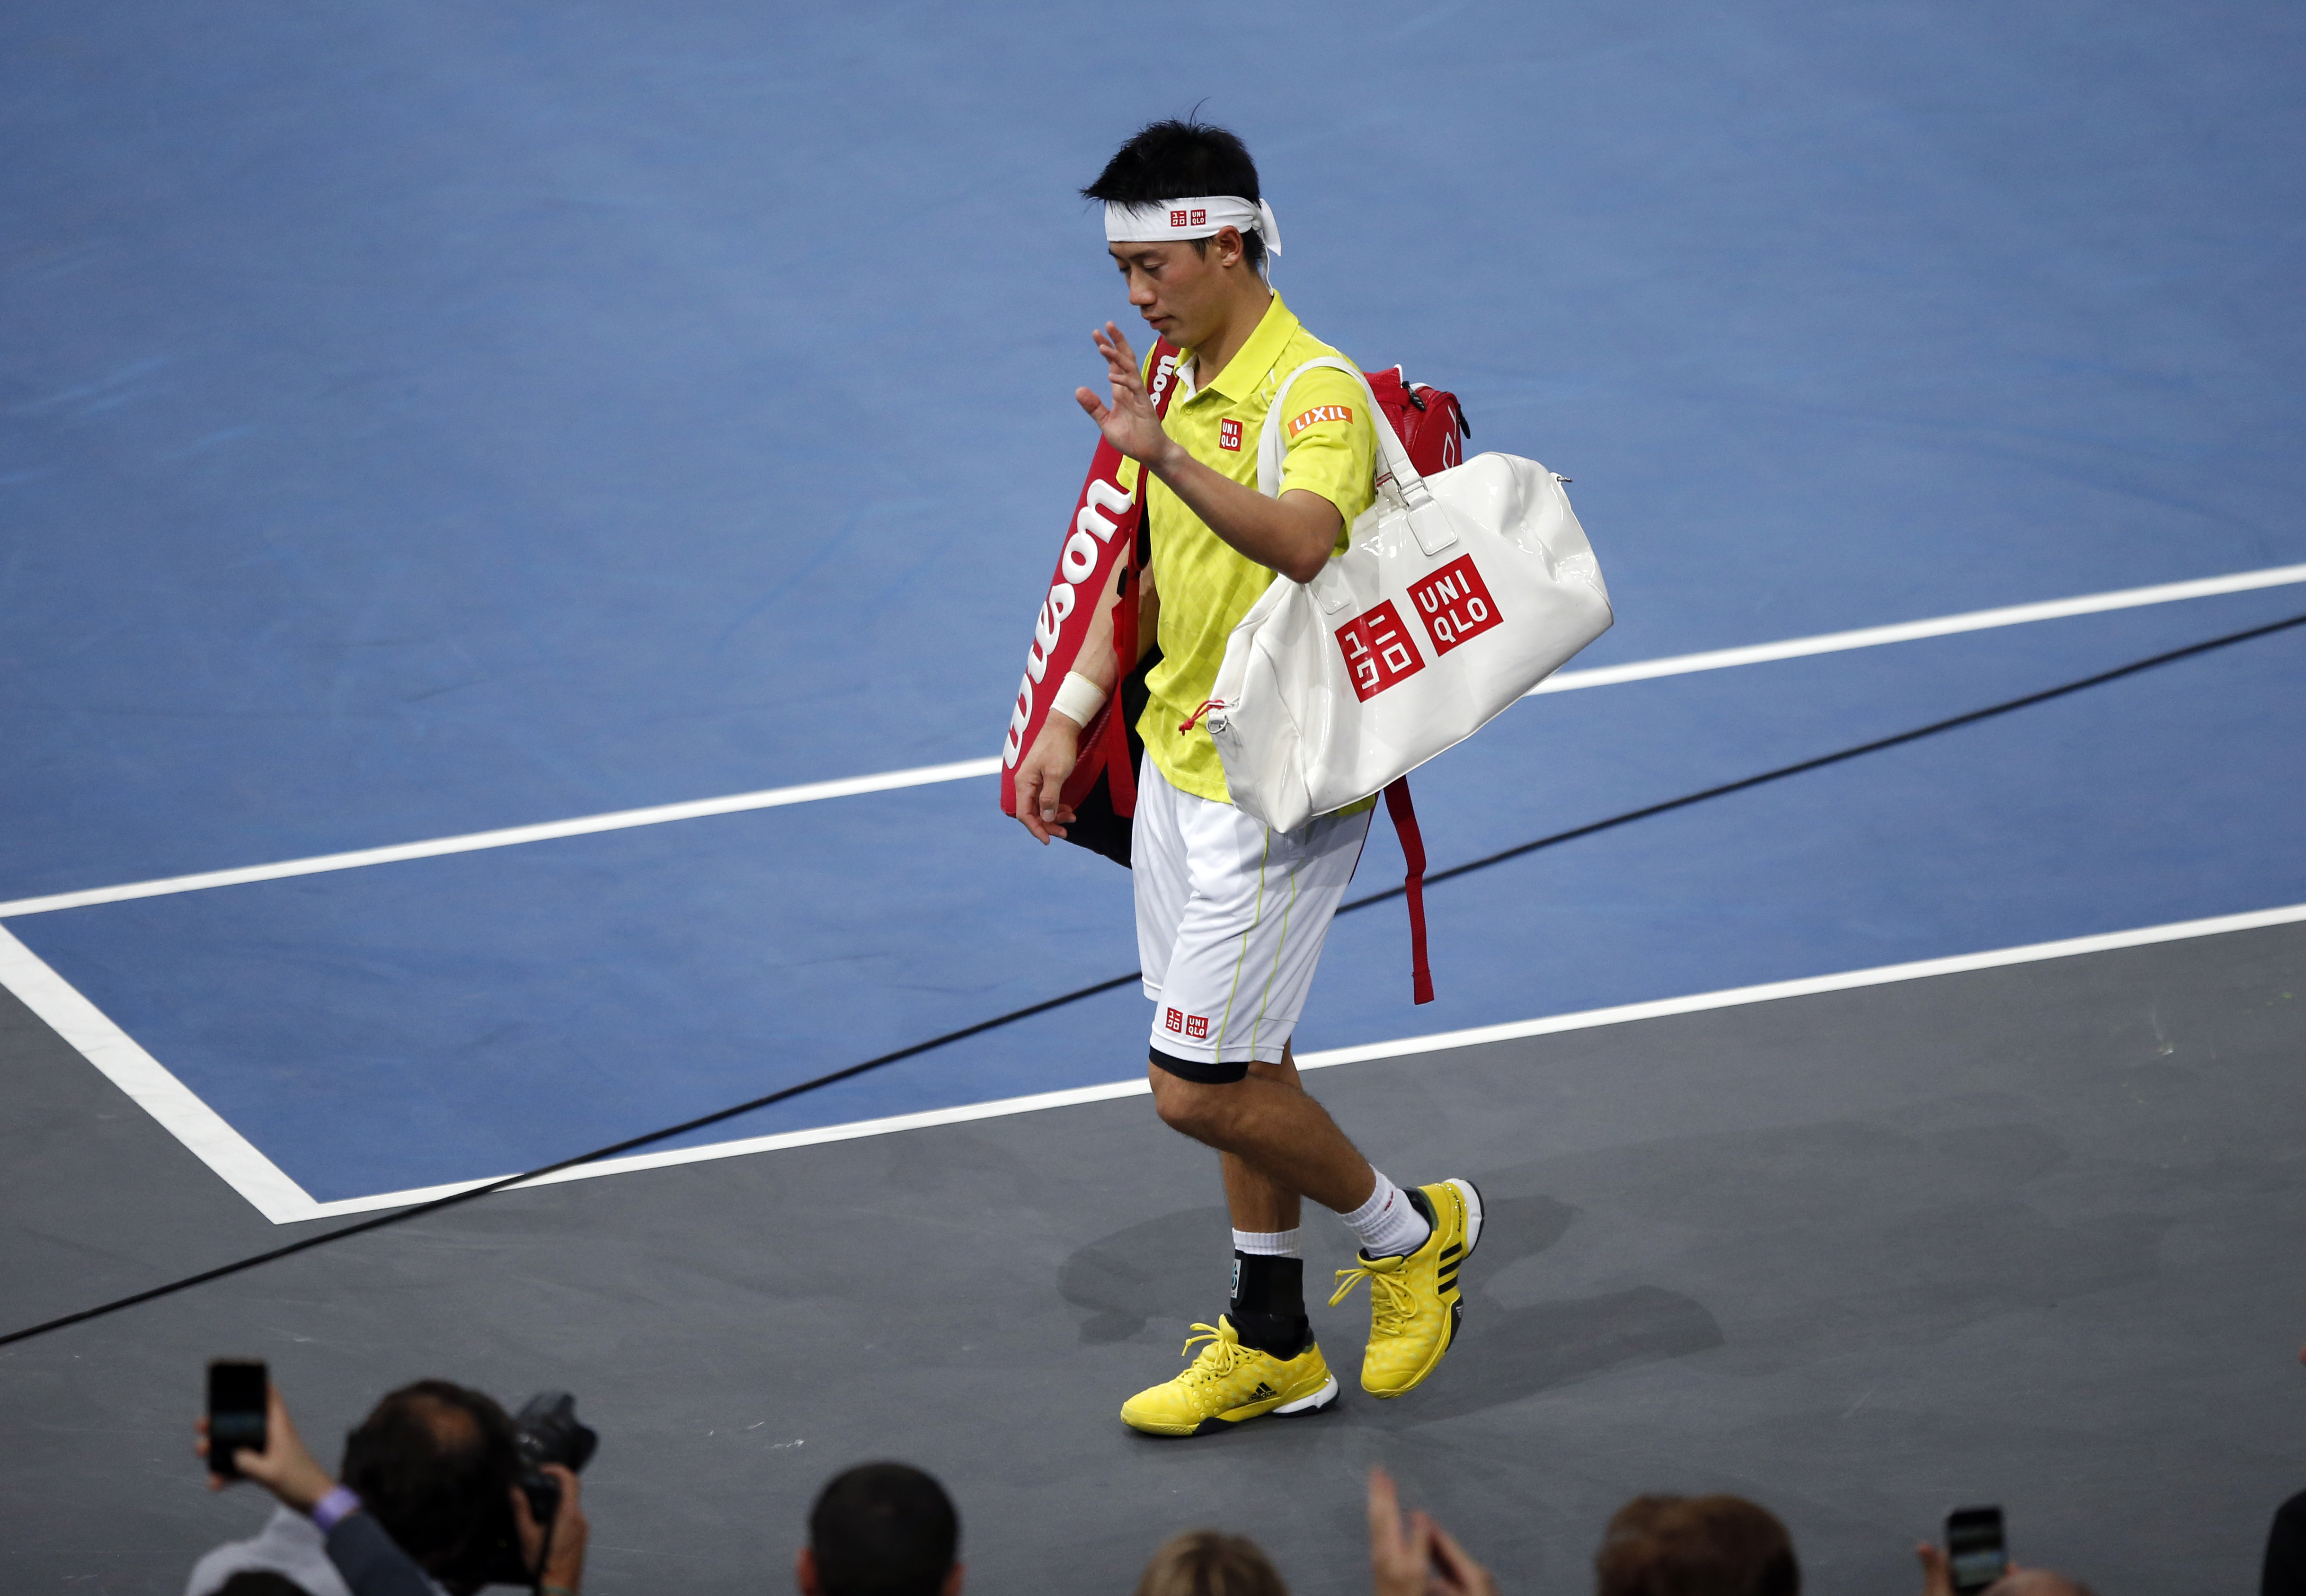 Japan's Kei Nishikori leaves the court after retiring against France's Richard Gasquet during their round of sixteen match of the BNP Masters tennis tournament, at the Paris refurbished Bercy Arena, in Paris, France, Thursday, Nov. 5, 2015. (AP Photo/Fran